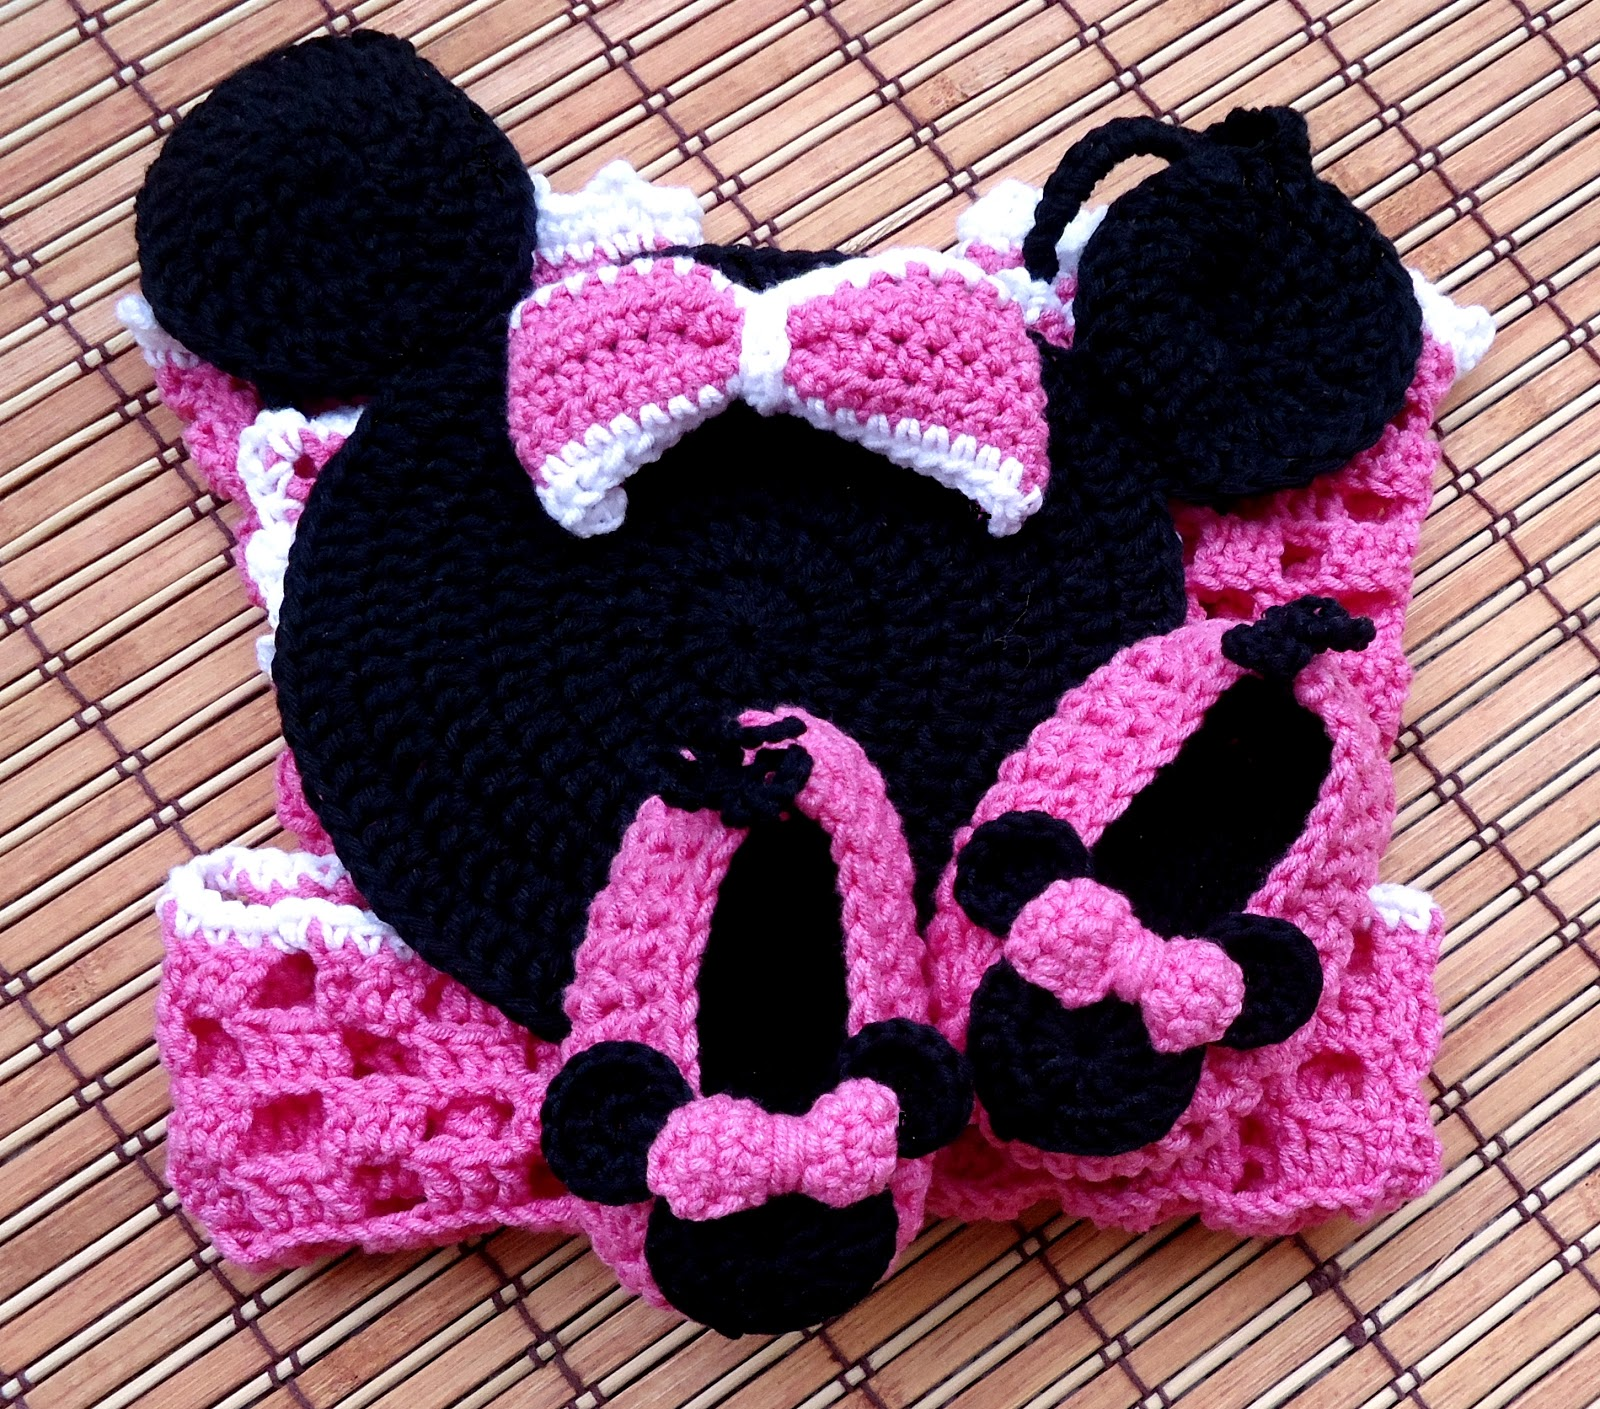 Old Fashioned Crochet Minnie Mouse Baby Outfit Pattern Vignette ...